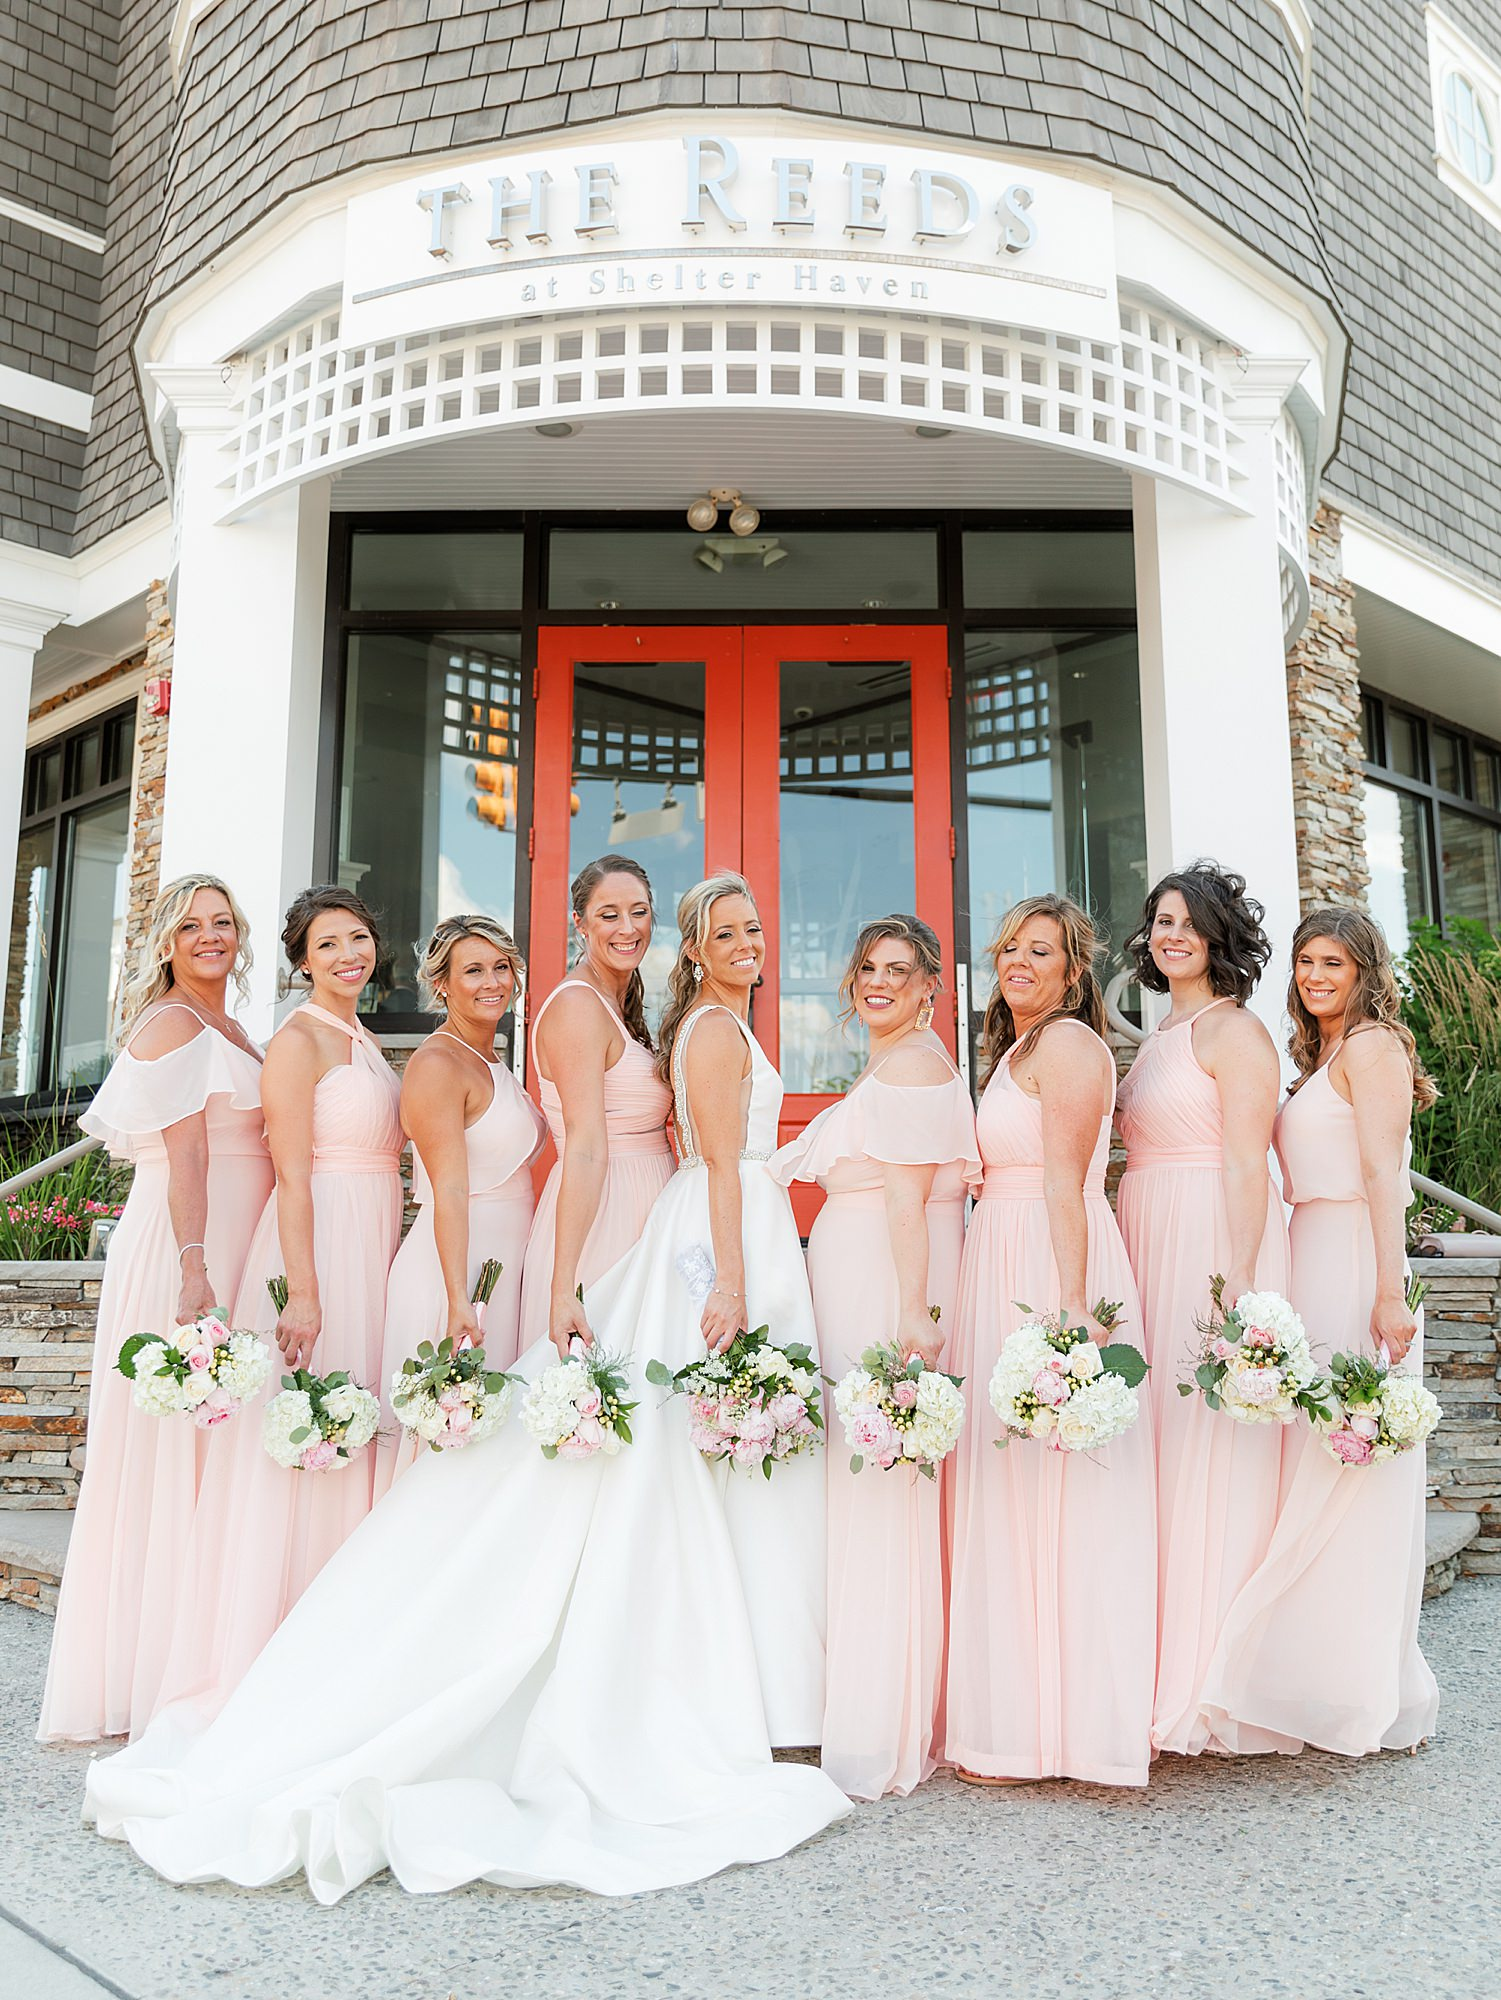 Natural and Vibrant Wedding Photography at the Reeds in Stone Harbor NJ by Magdalena Studios 0032